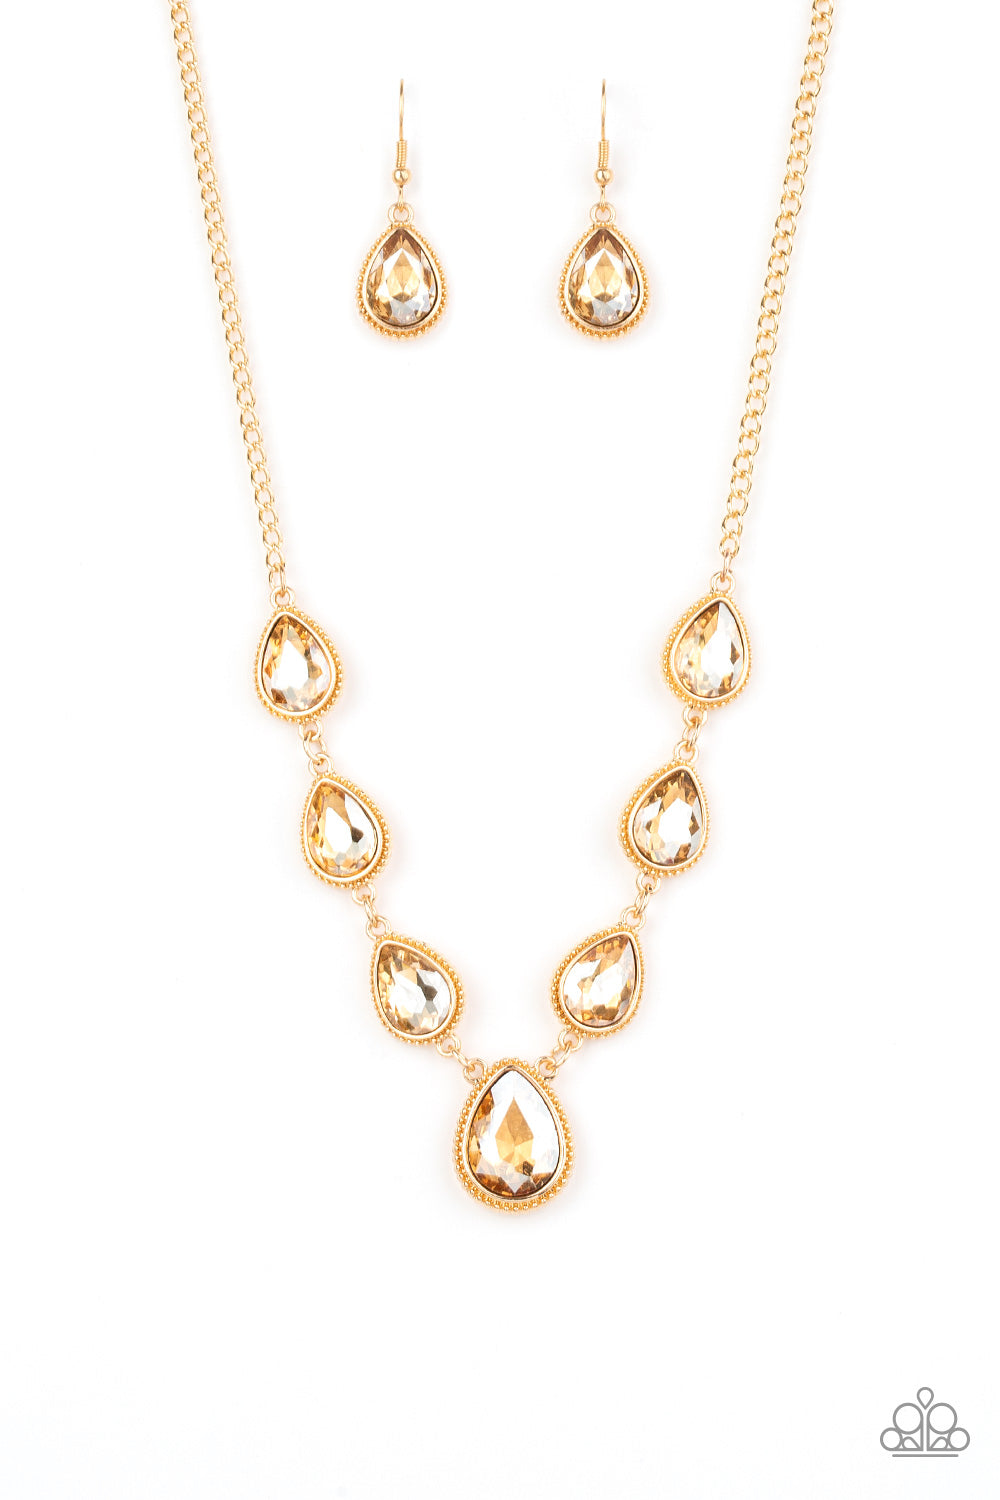 Socialite Social - Gold Necklace